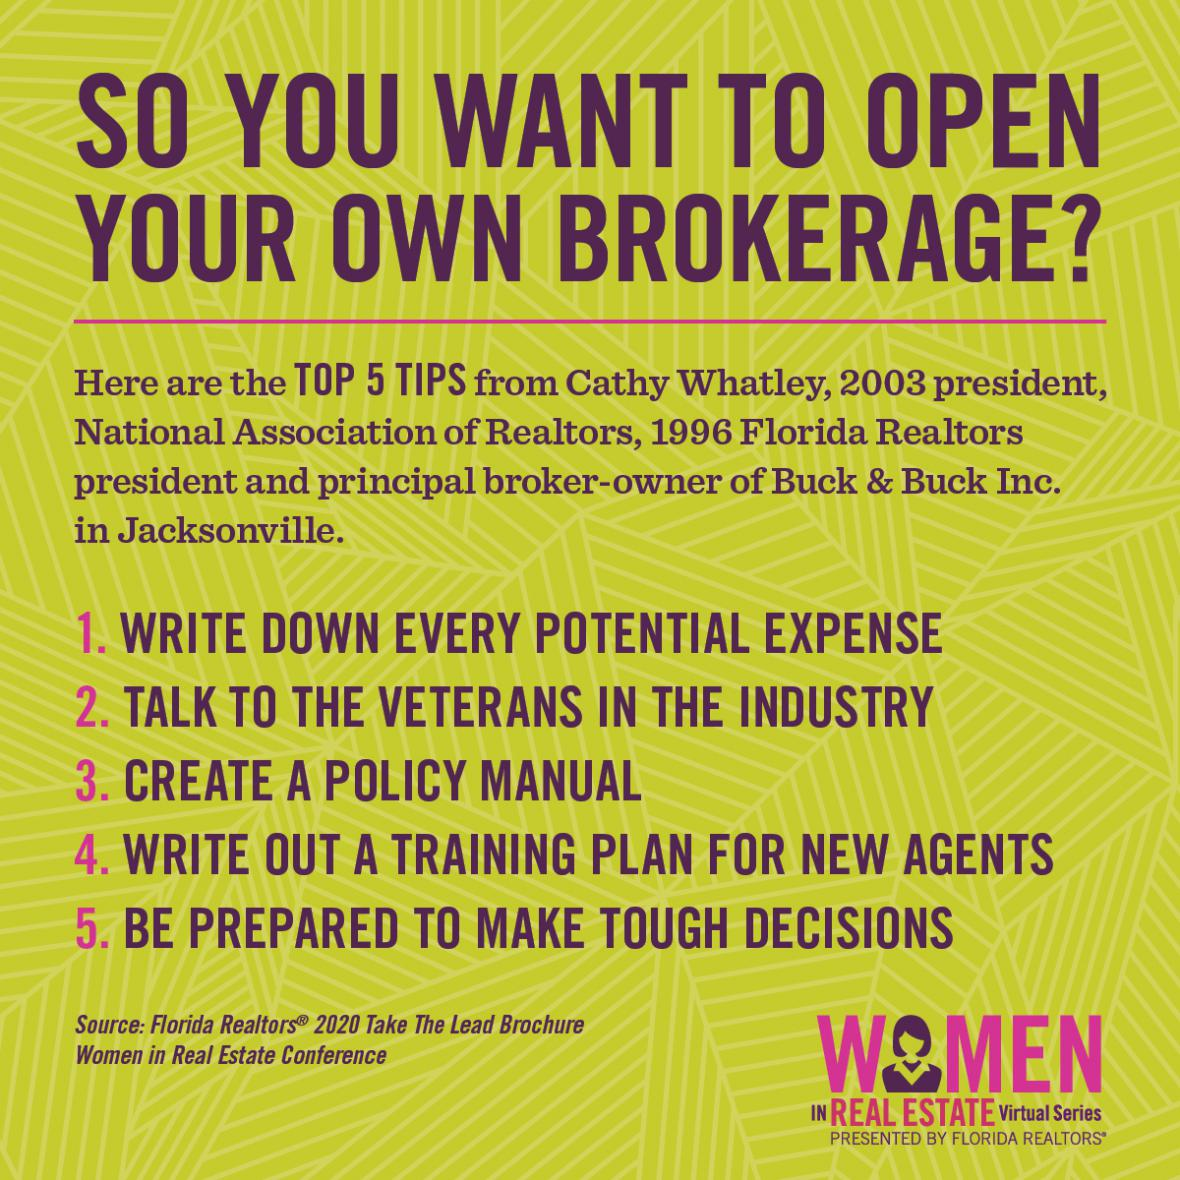 So You Want to Open Your Own Brokerage infographic